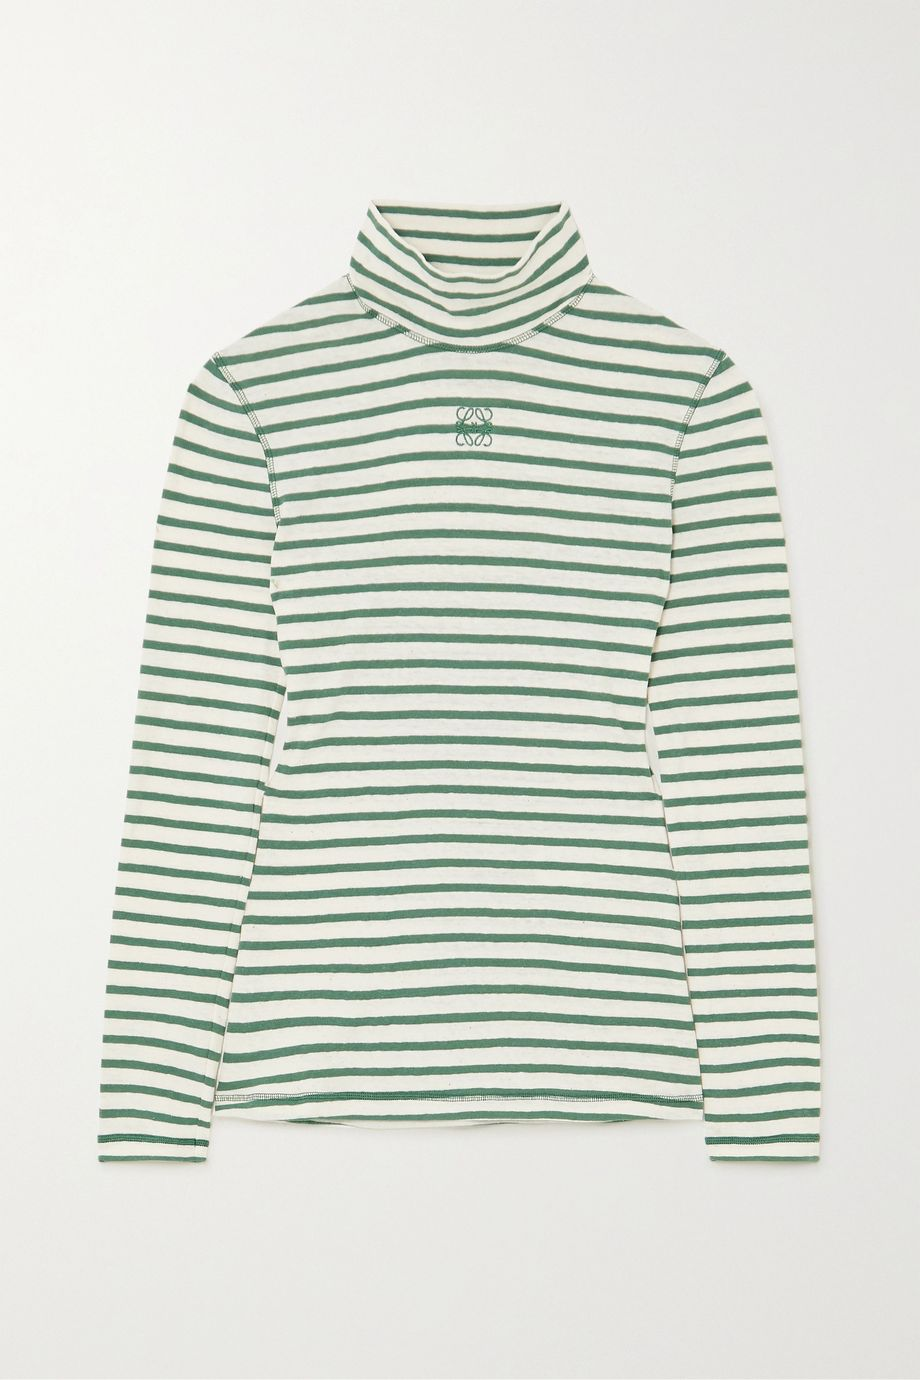 Loewe Striped cotton-jersey turtleneck top